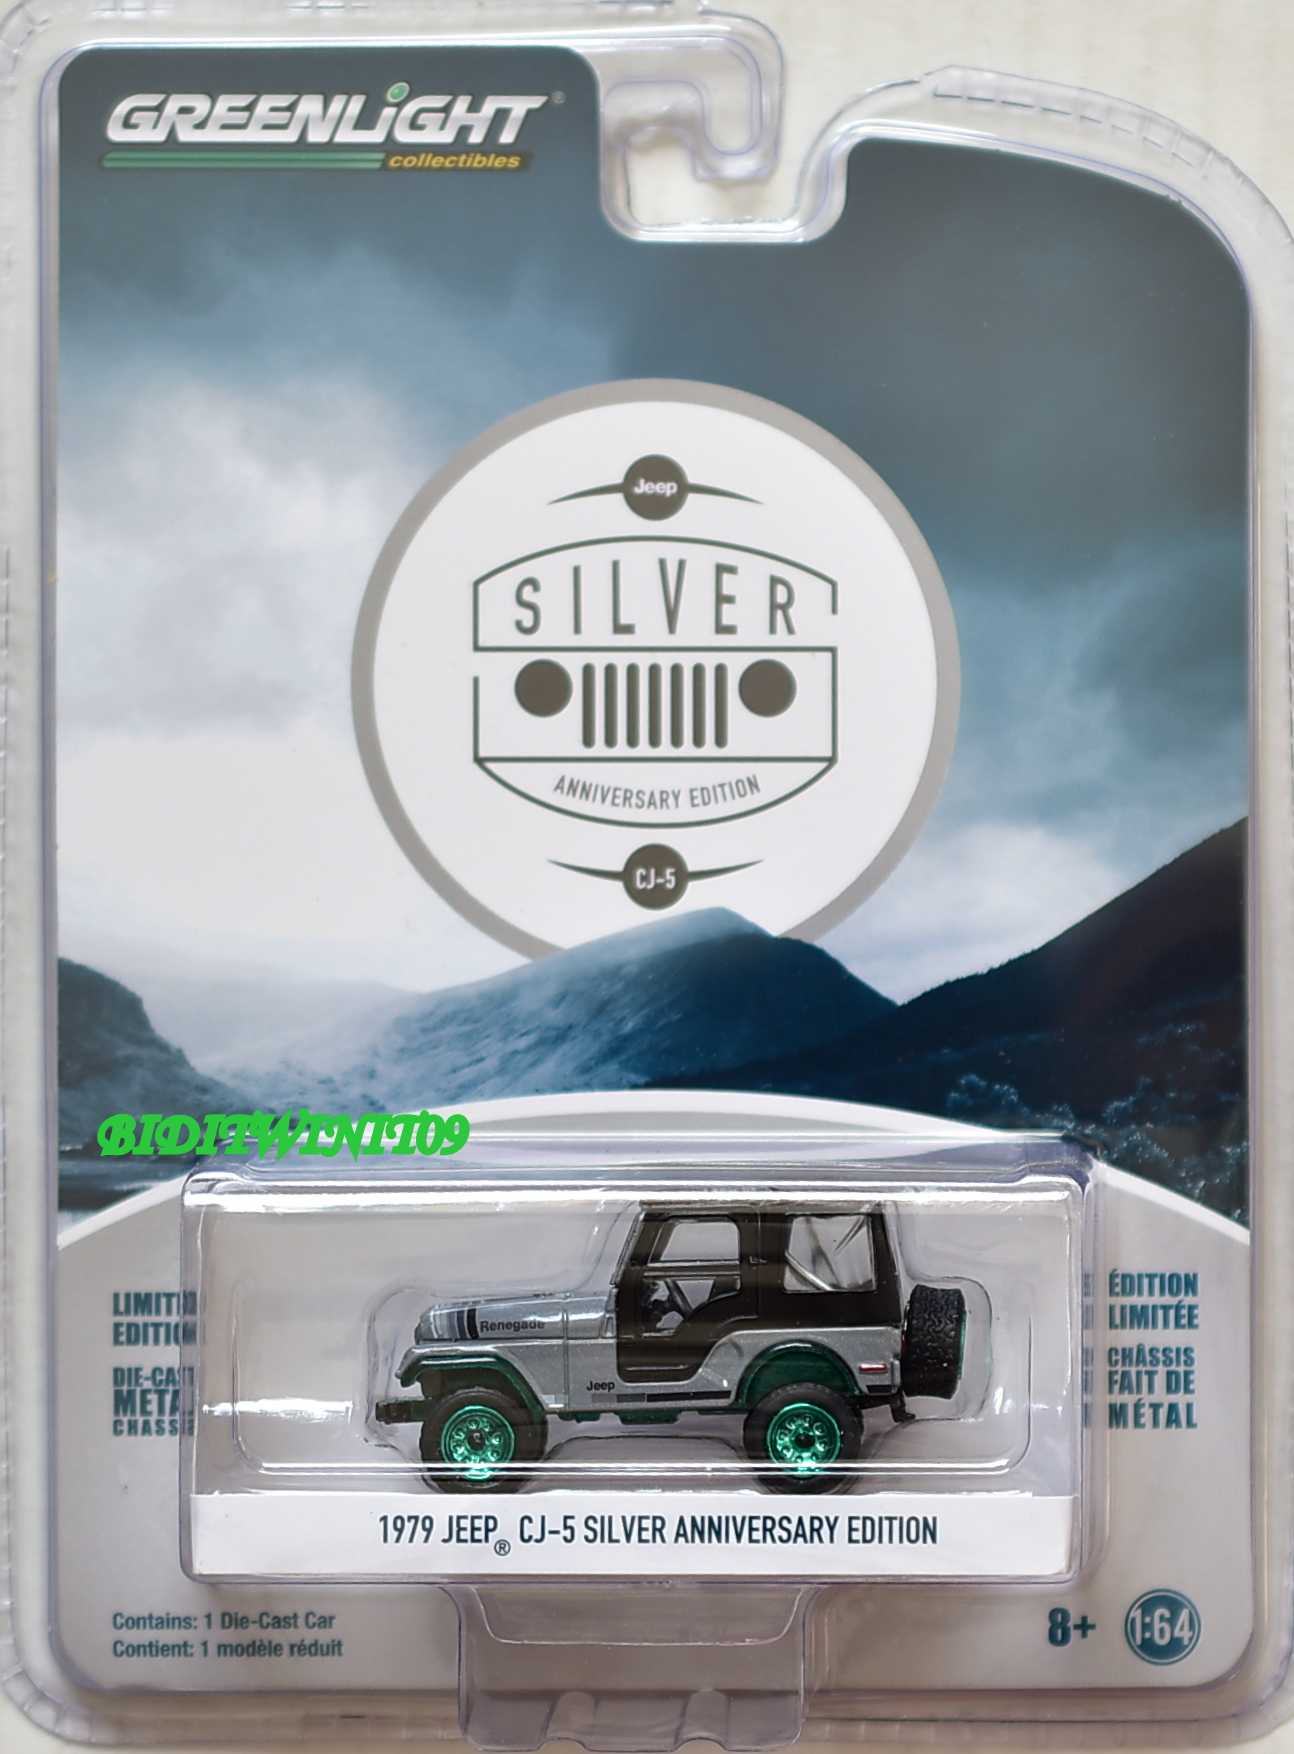 GREENLIGHT 1979 JEEP CJ-5 SILVER ANNIVERSARY EDITION GREEN MACHINE